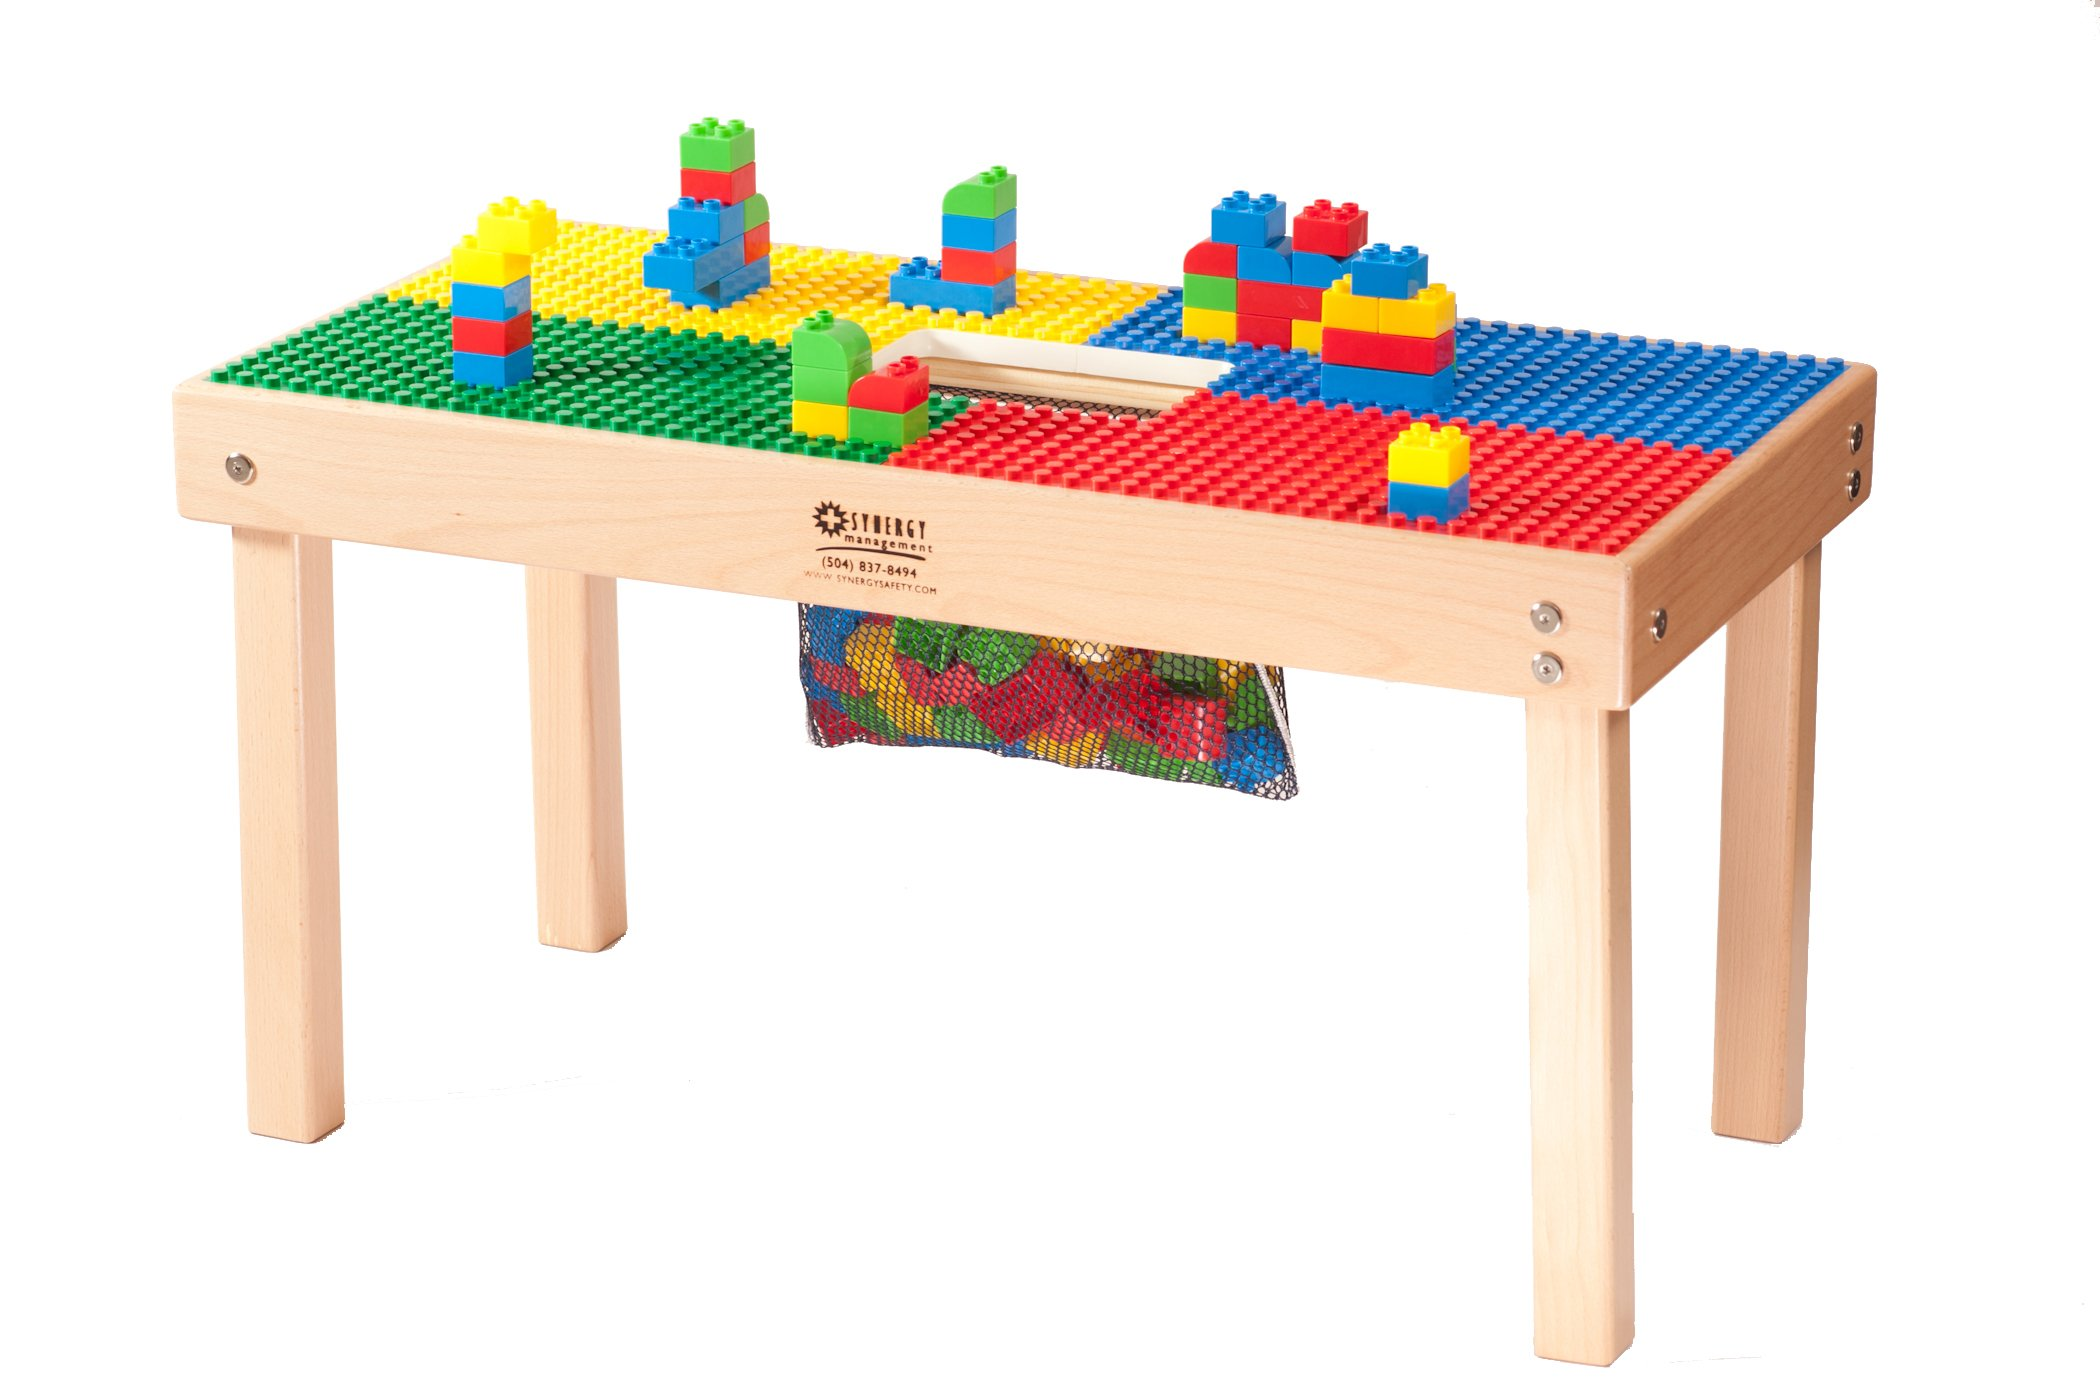 Heavy Duty Duplo Compatible Block Table with Built-in Lego Storage(Patent)-32'' x 16''-Made in USA! PREASSEMBLED-Deluxe Series-Solid Hardwood Legs & Frame-Built to Last -Ages 1 to 5 by Fun Builder